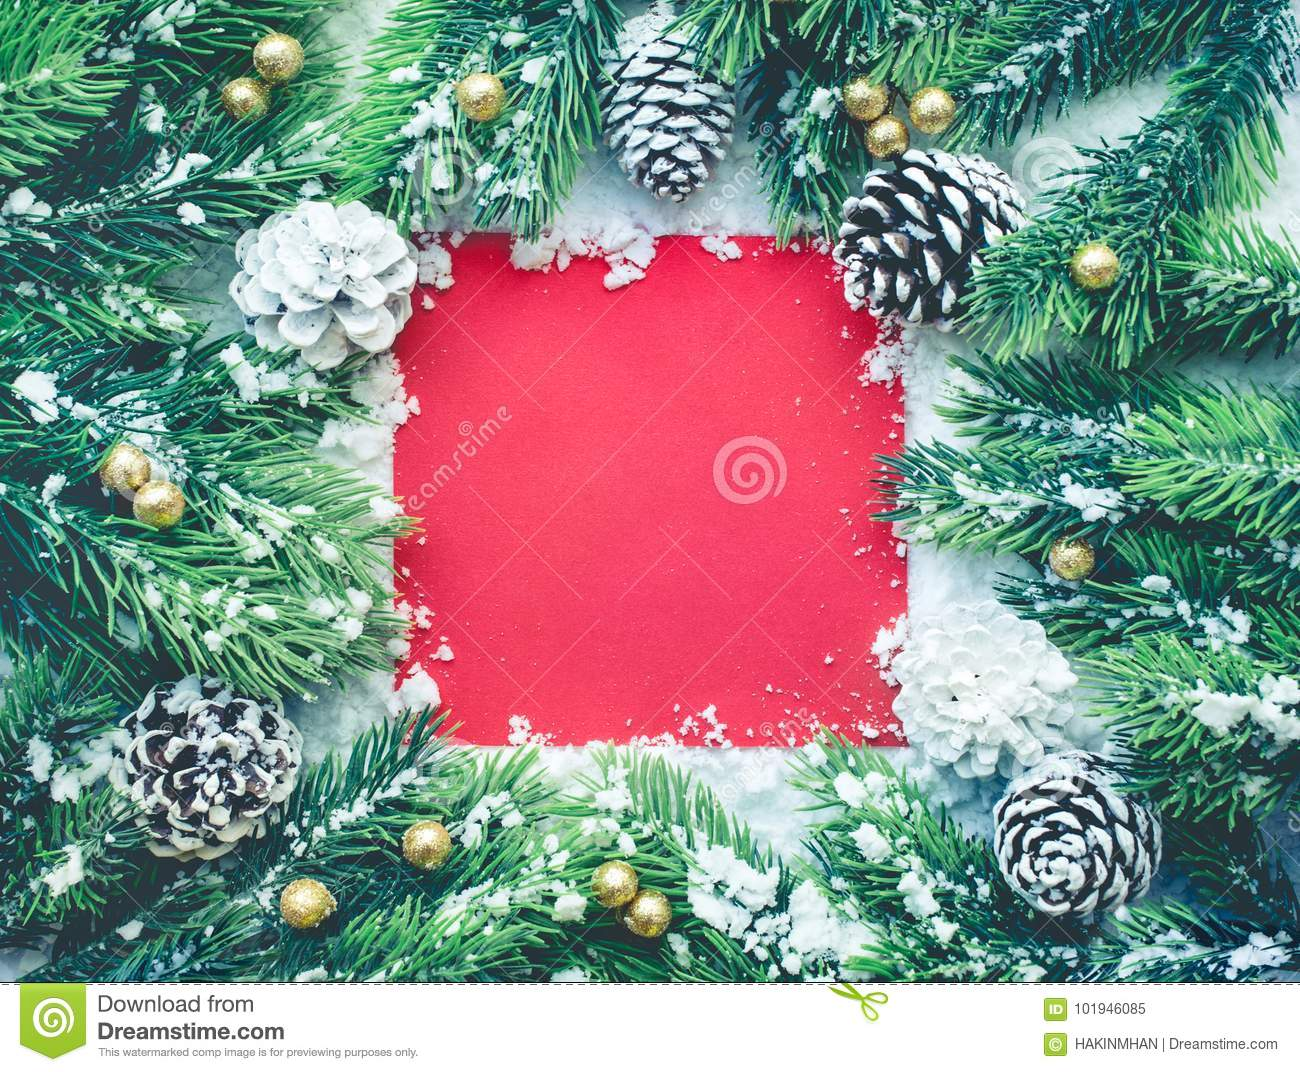 Christmas ornament with fir tree,pine branch,snow and red card background